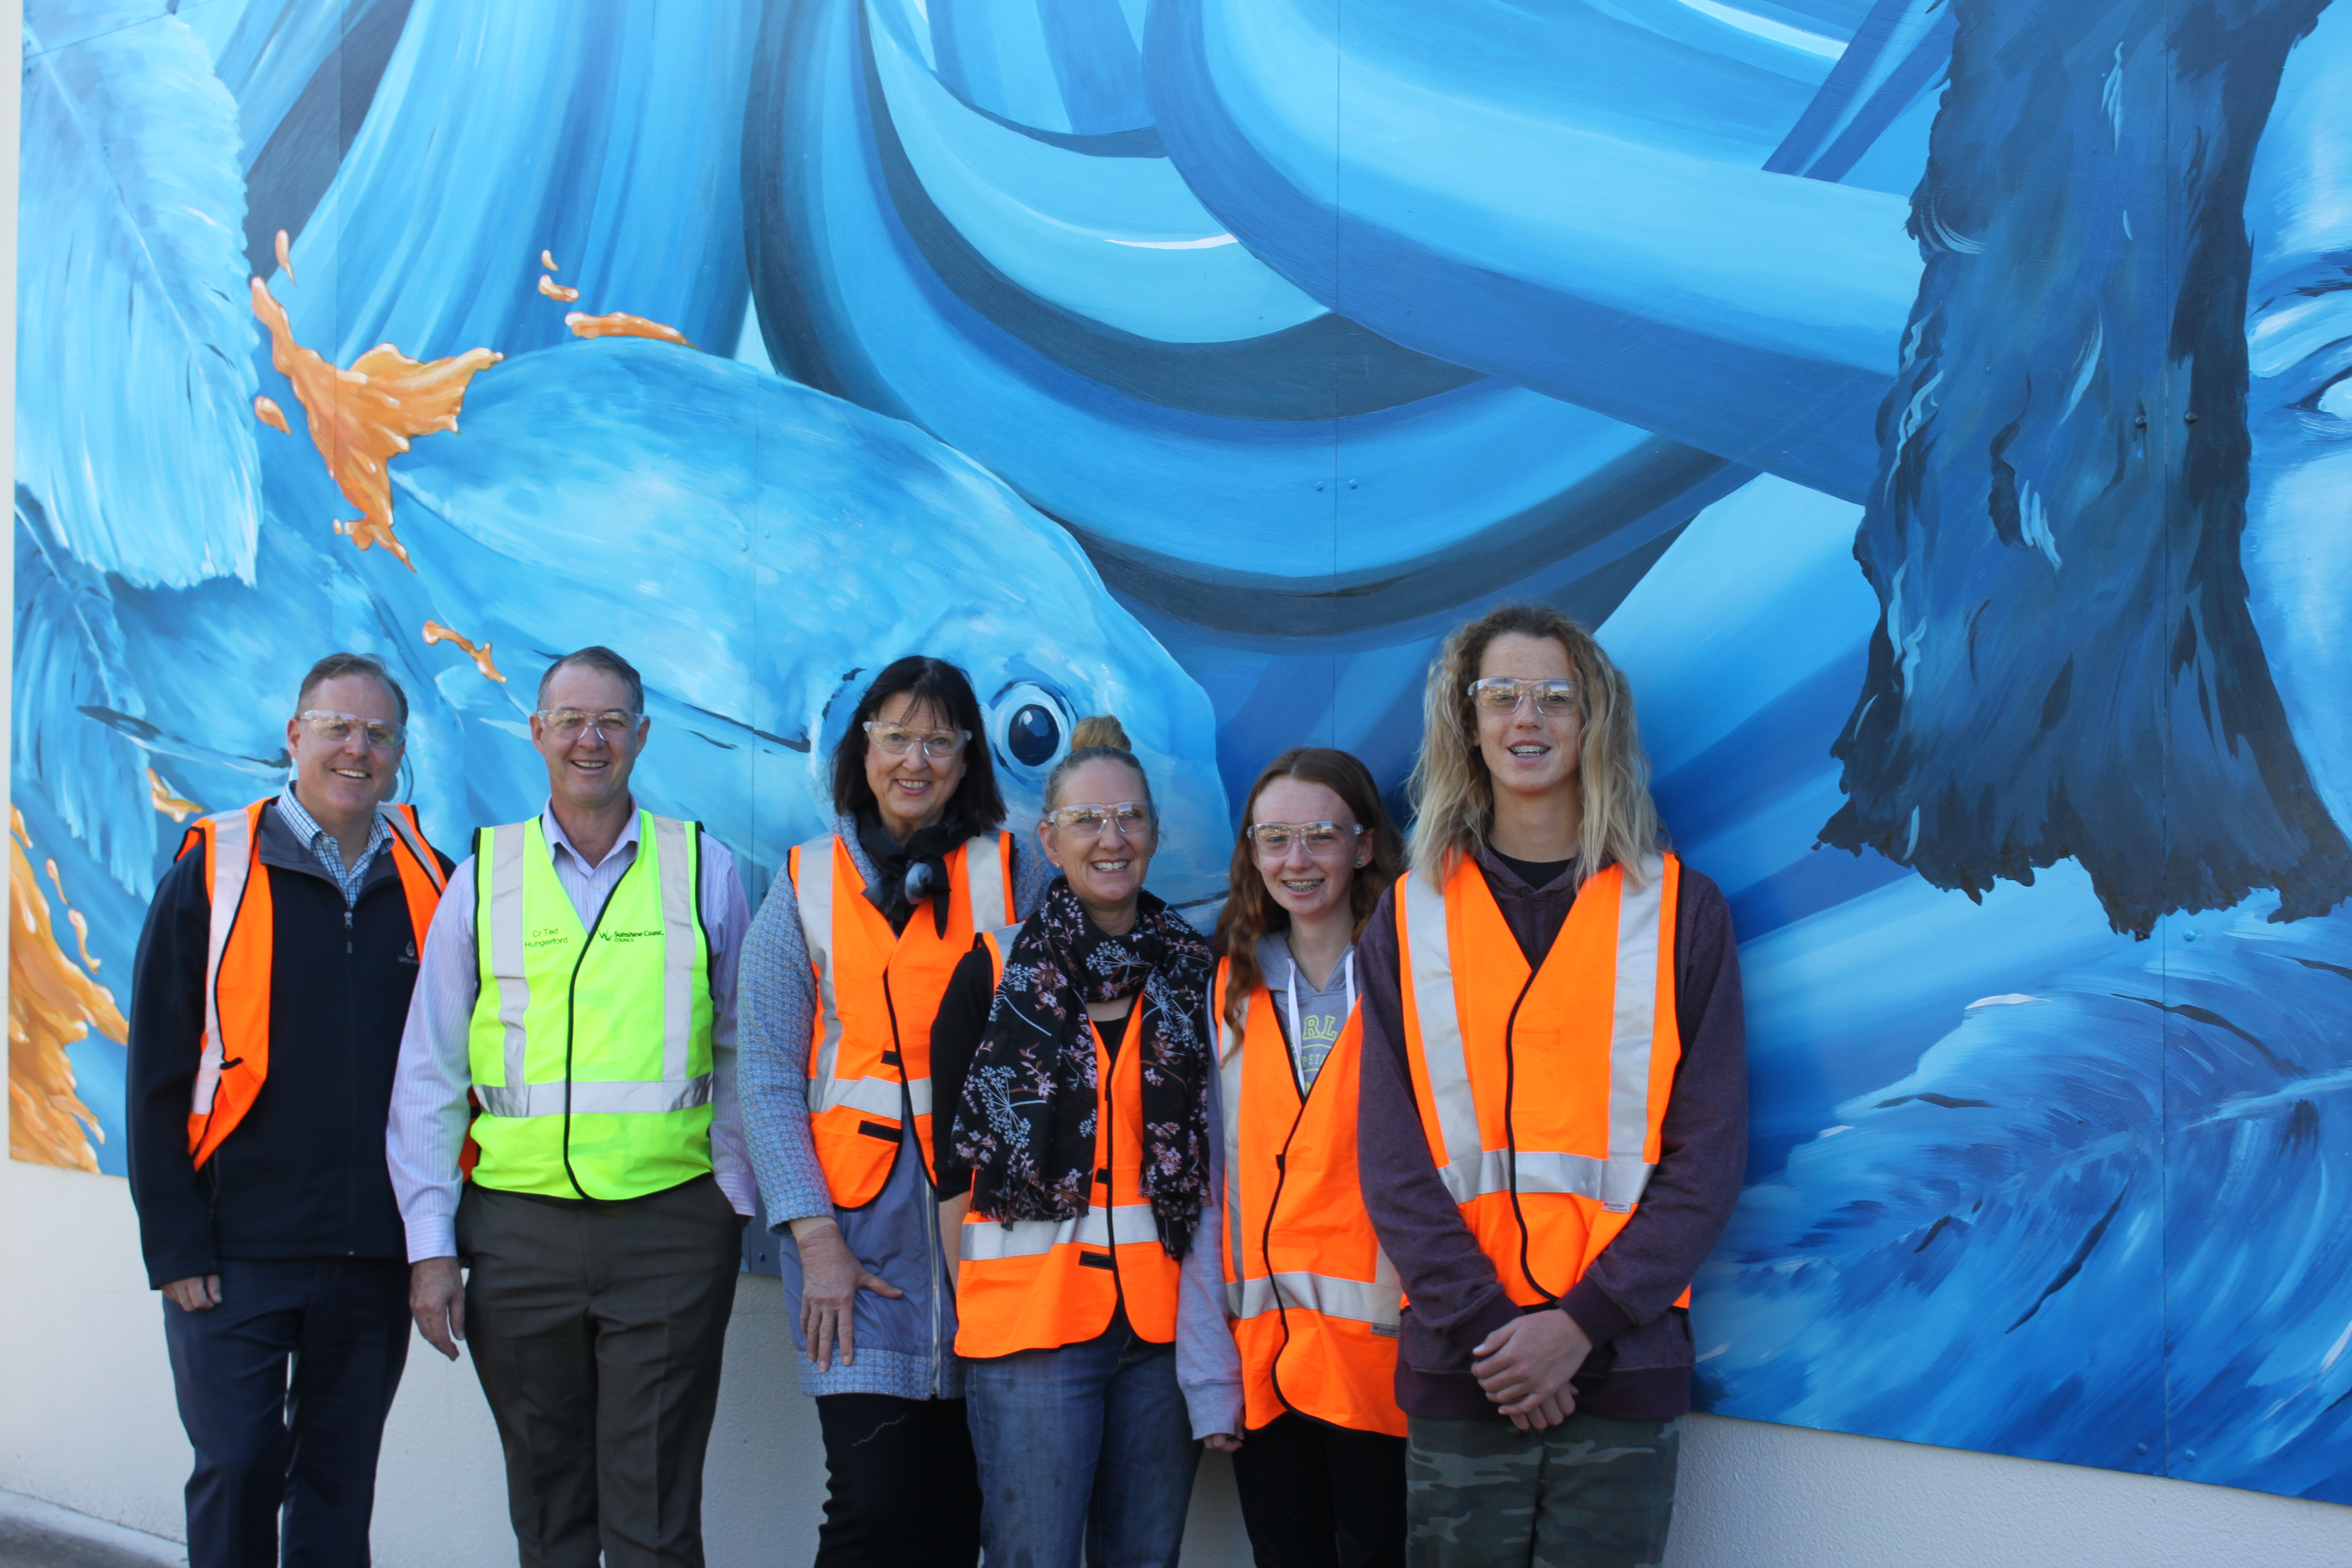 Fishermans Rd pump station mural. Unitywater Community Relations Manager Chris Jones, Councillor Ted Hungerford, Councillor Jenny McKay, Barb Sinclair, and students involved in the project Tallulah Veal-Sinclair and Jye Parkinson